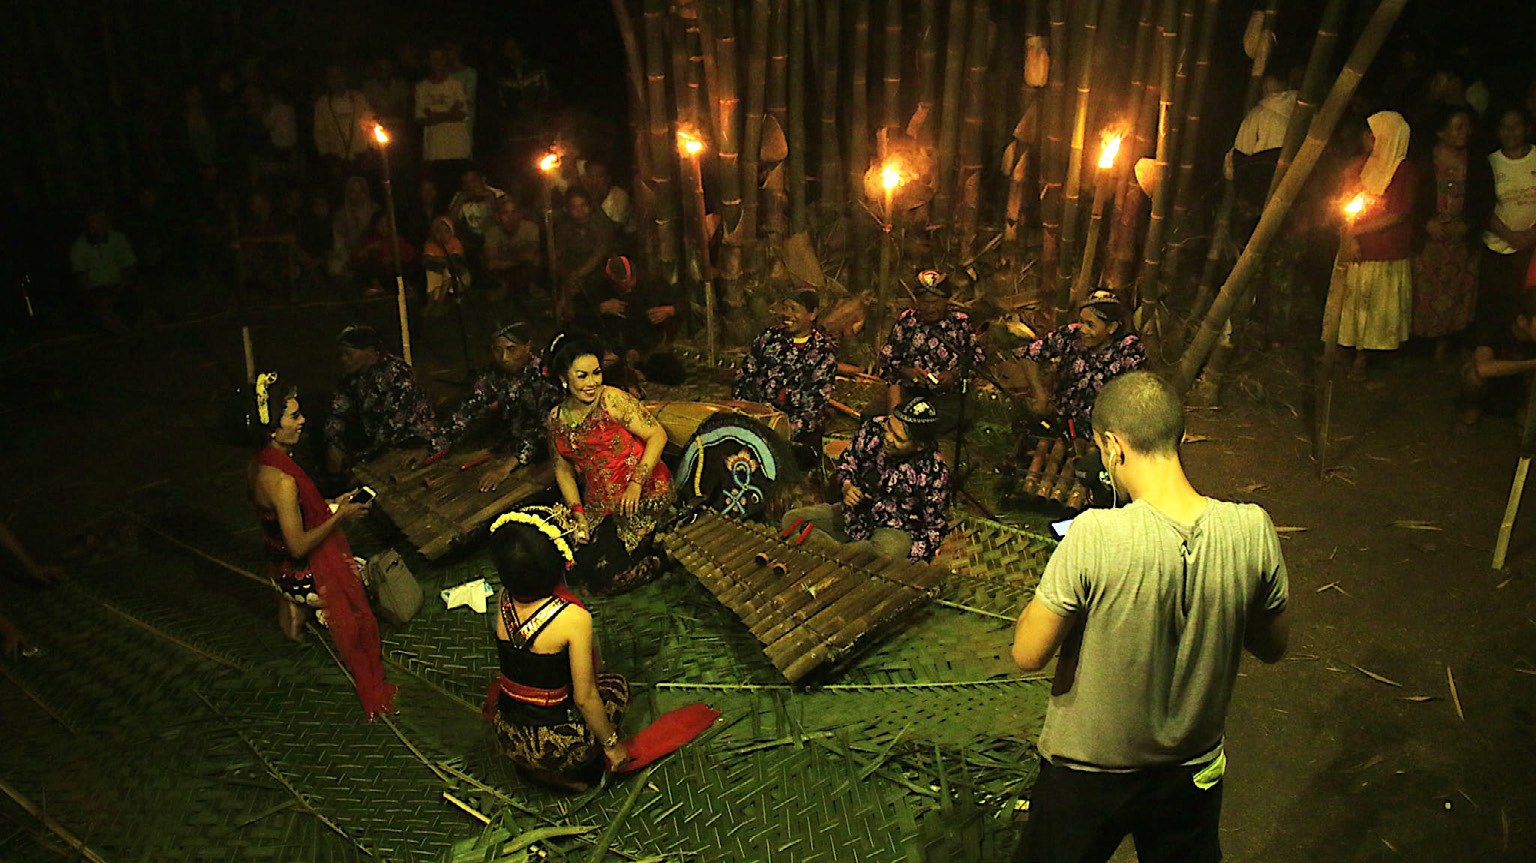 FIGURE 4. The author and the performers during the shooting of the last scene of the film at Kedawung village (Susukan, Banjarnegara), 26th August 2019 (photo: Bayu Prasetya).